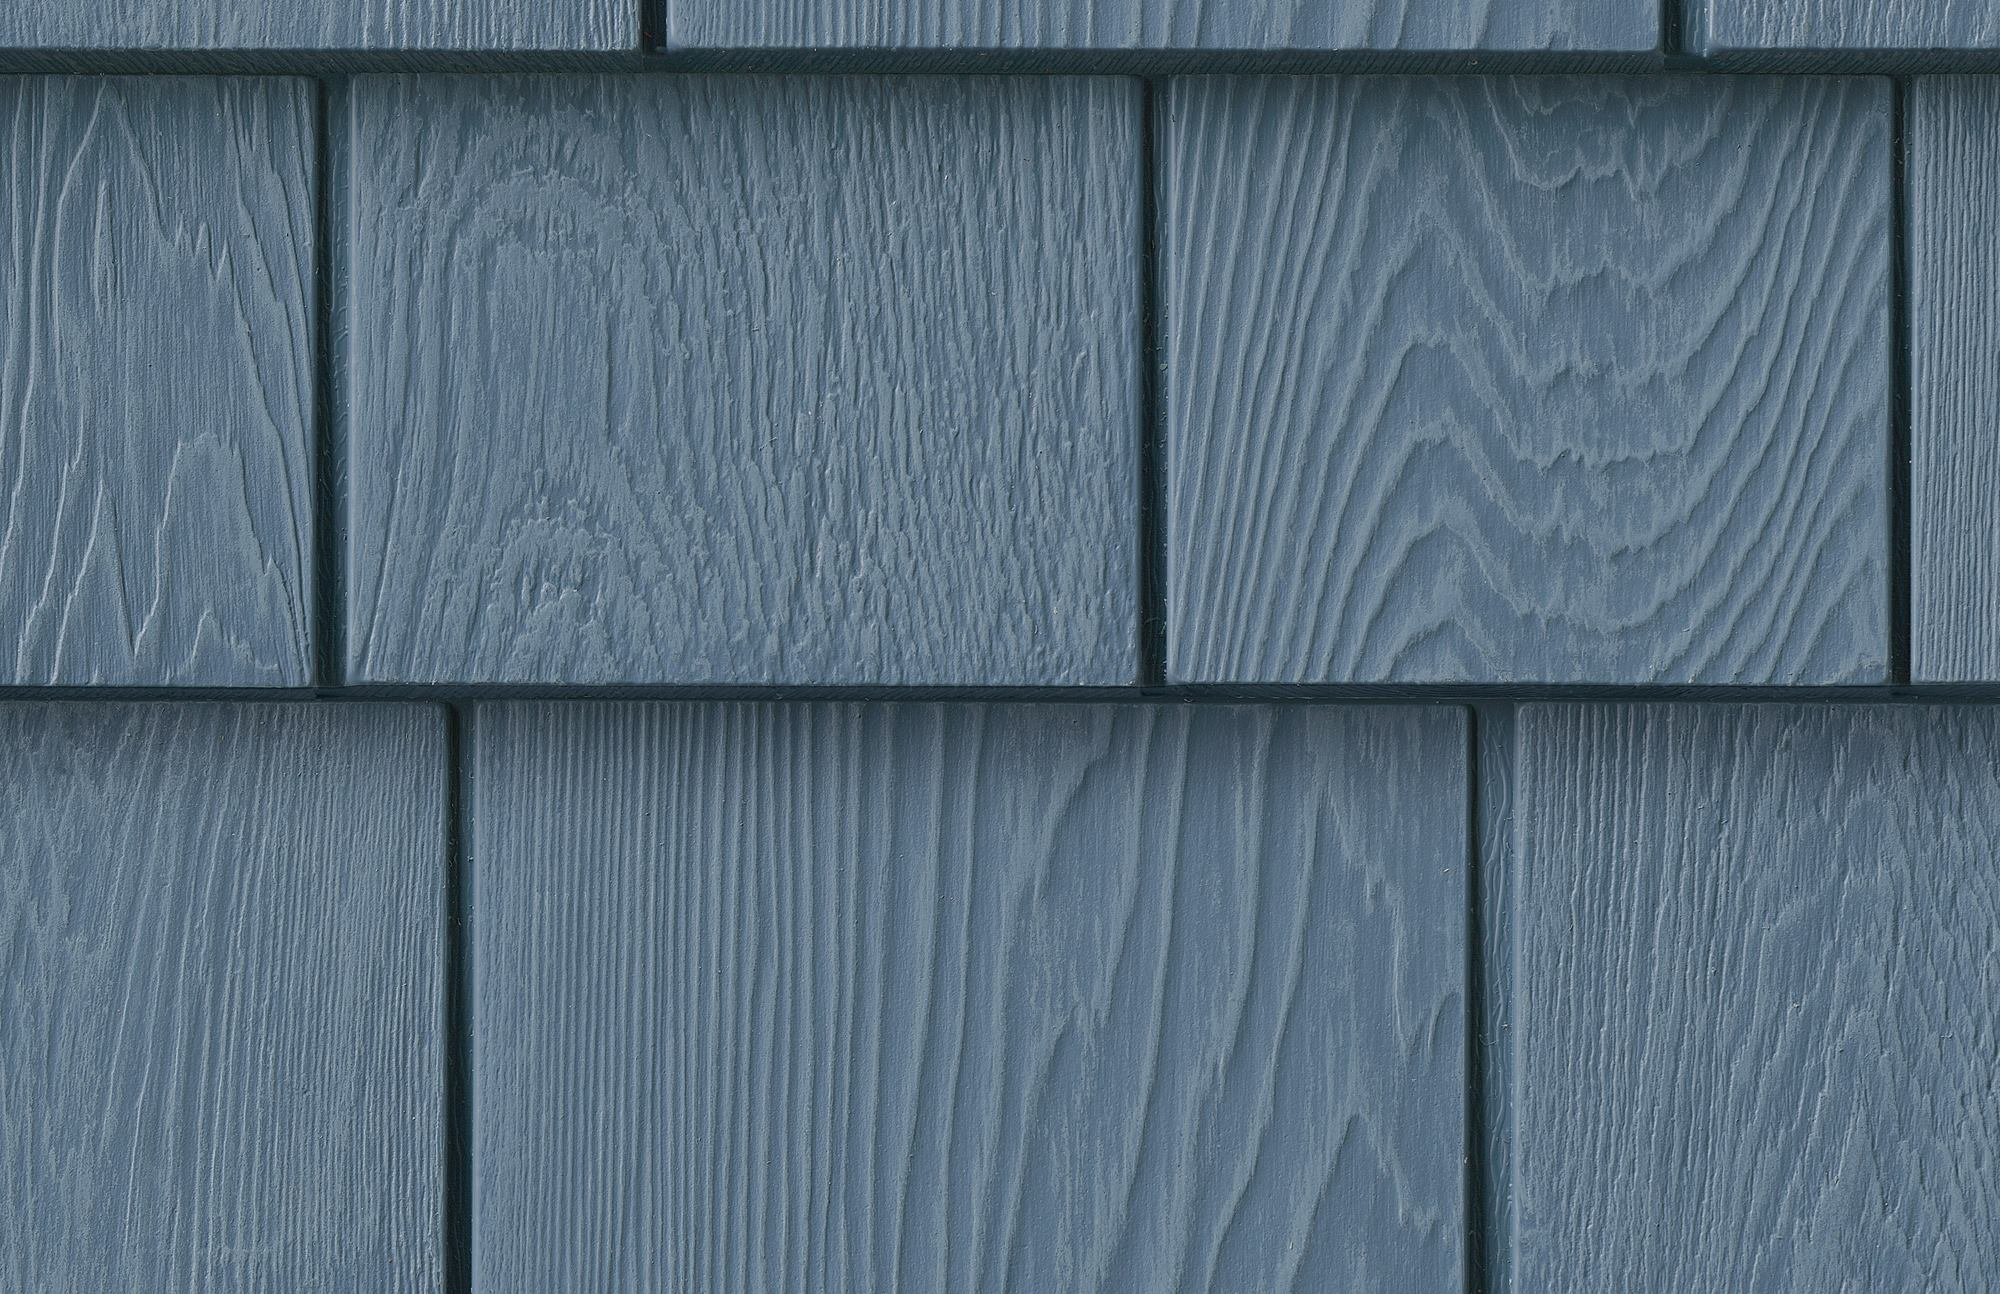 Tapco Launches New Grayne Composite Siding Line Jlc